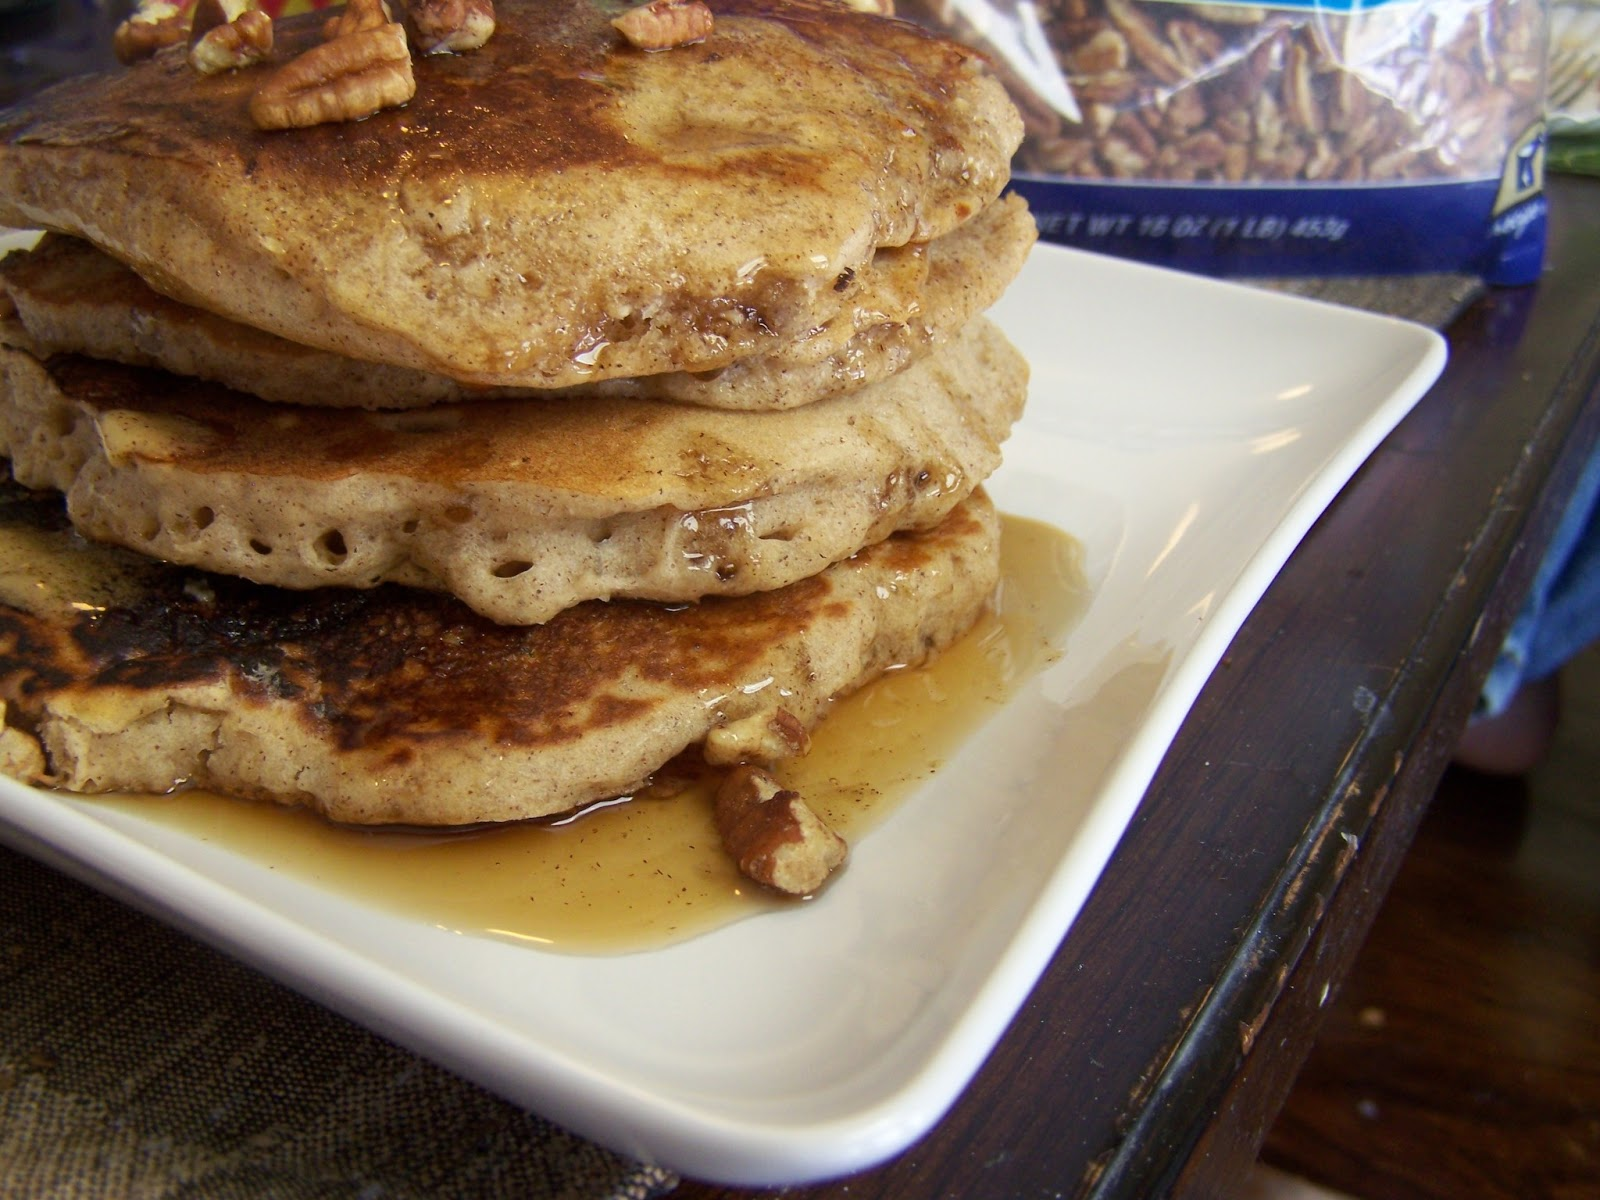 ... Brainchild: Banana Oat Raisin Pancakes with Honey Cinnamon Butter